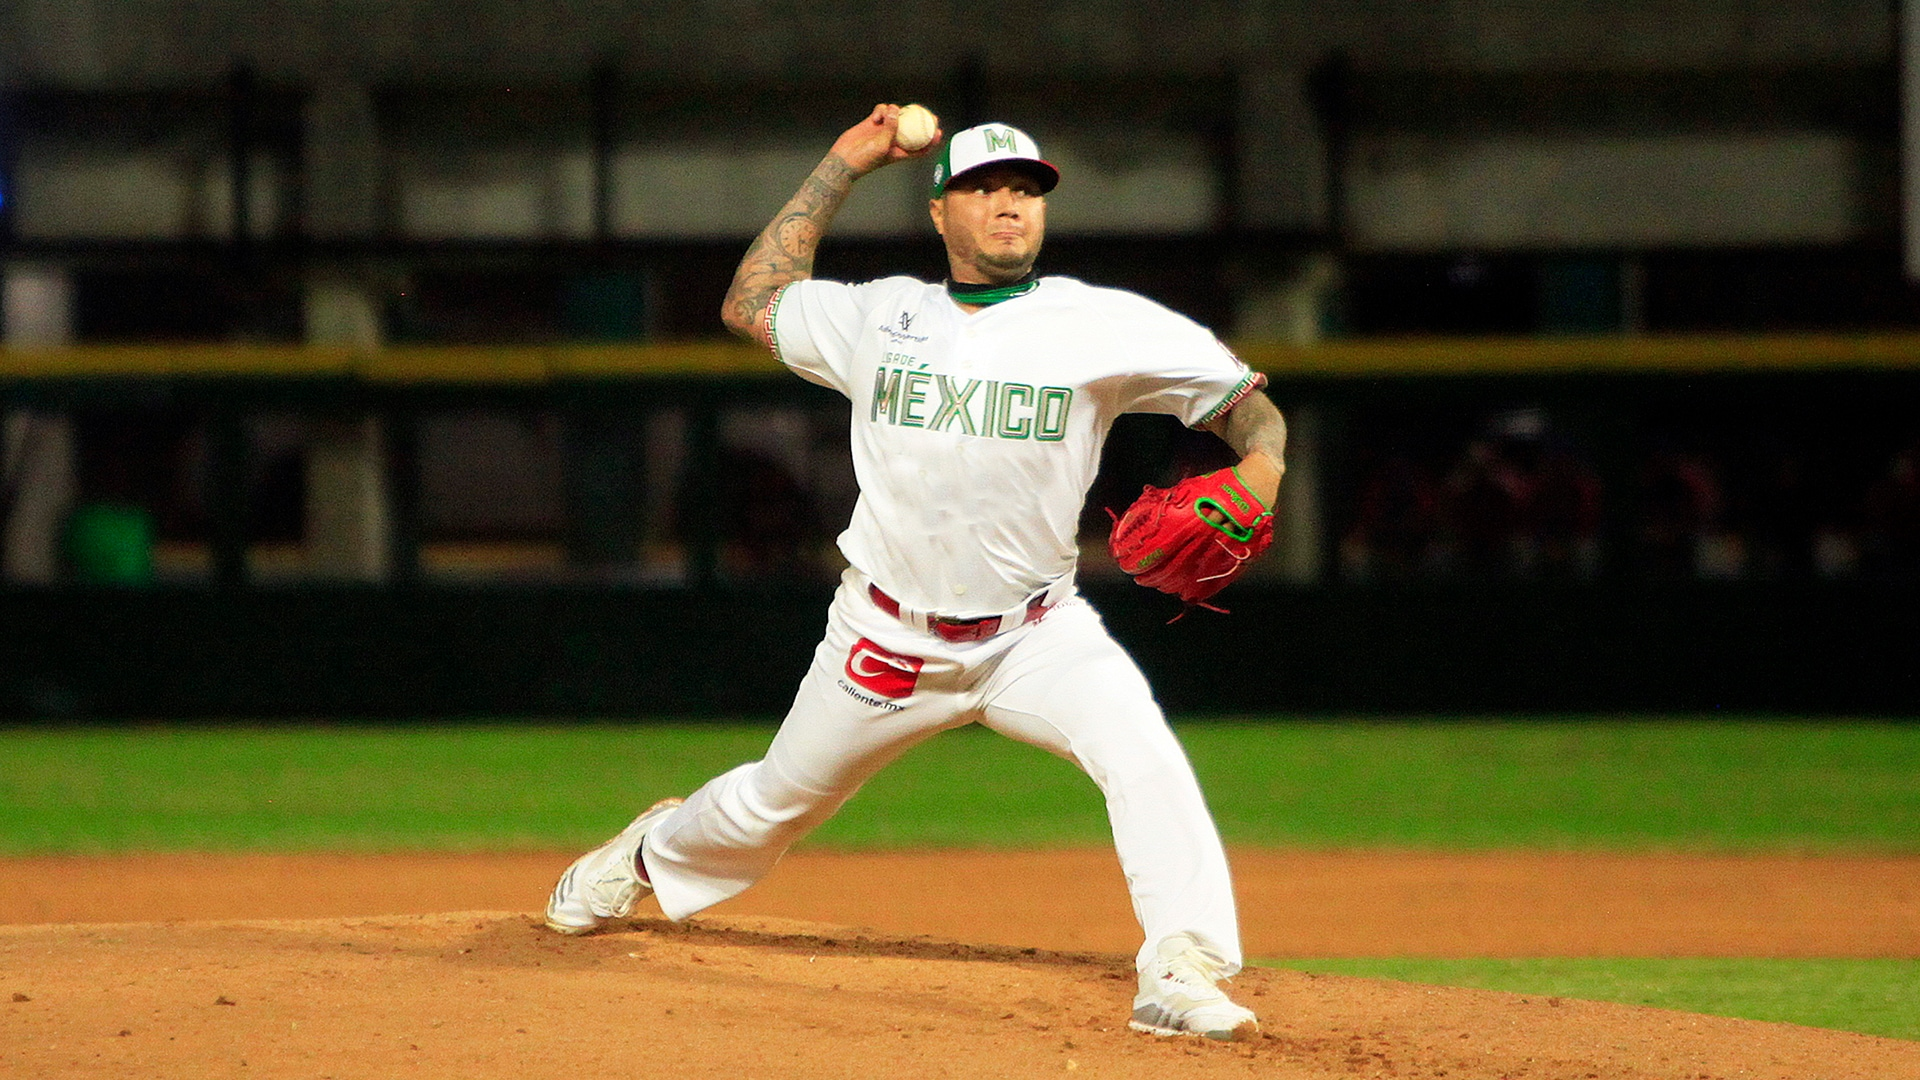 Image for Mexico to replace two pitchers after positive COVID-19 tests, per coach